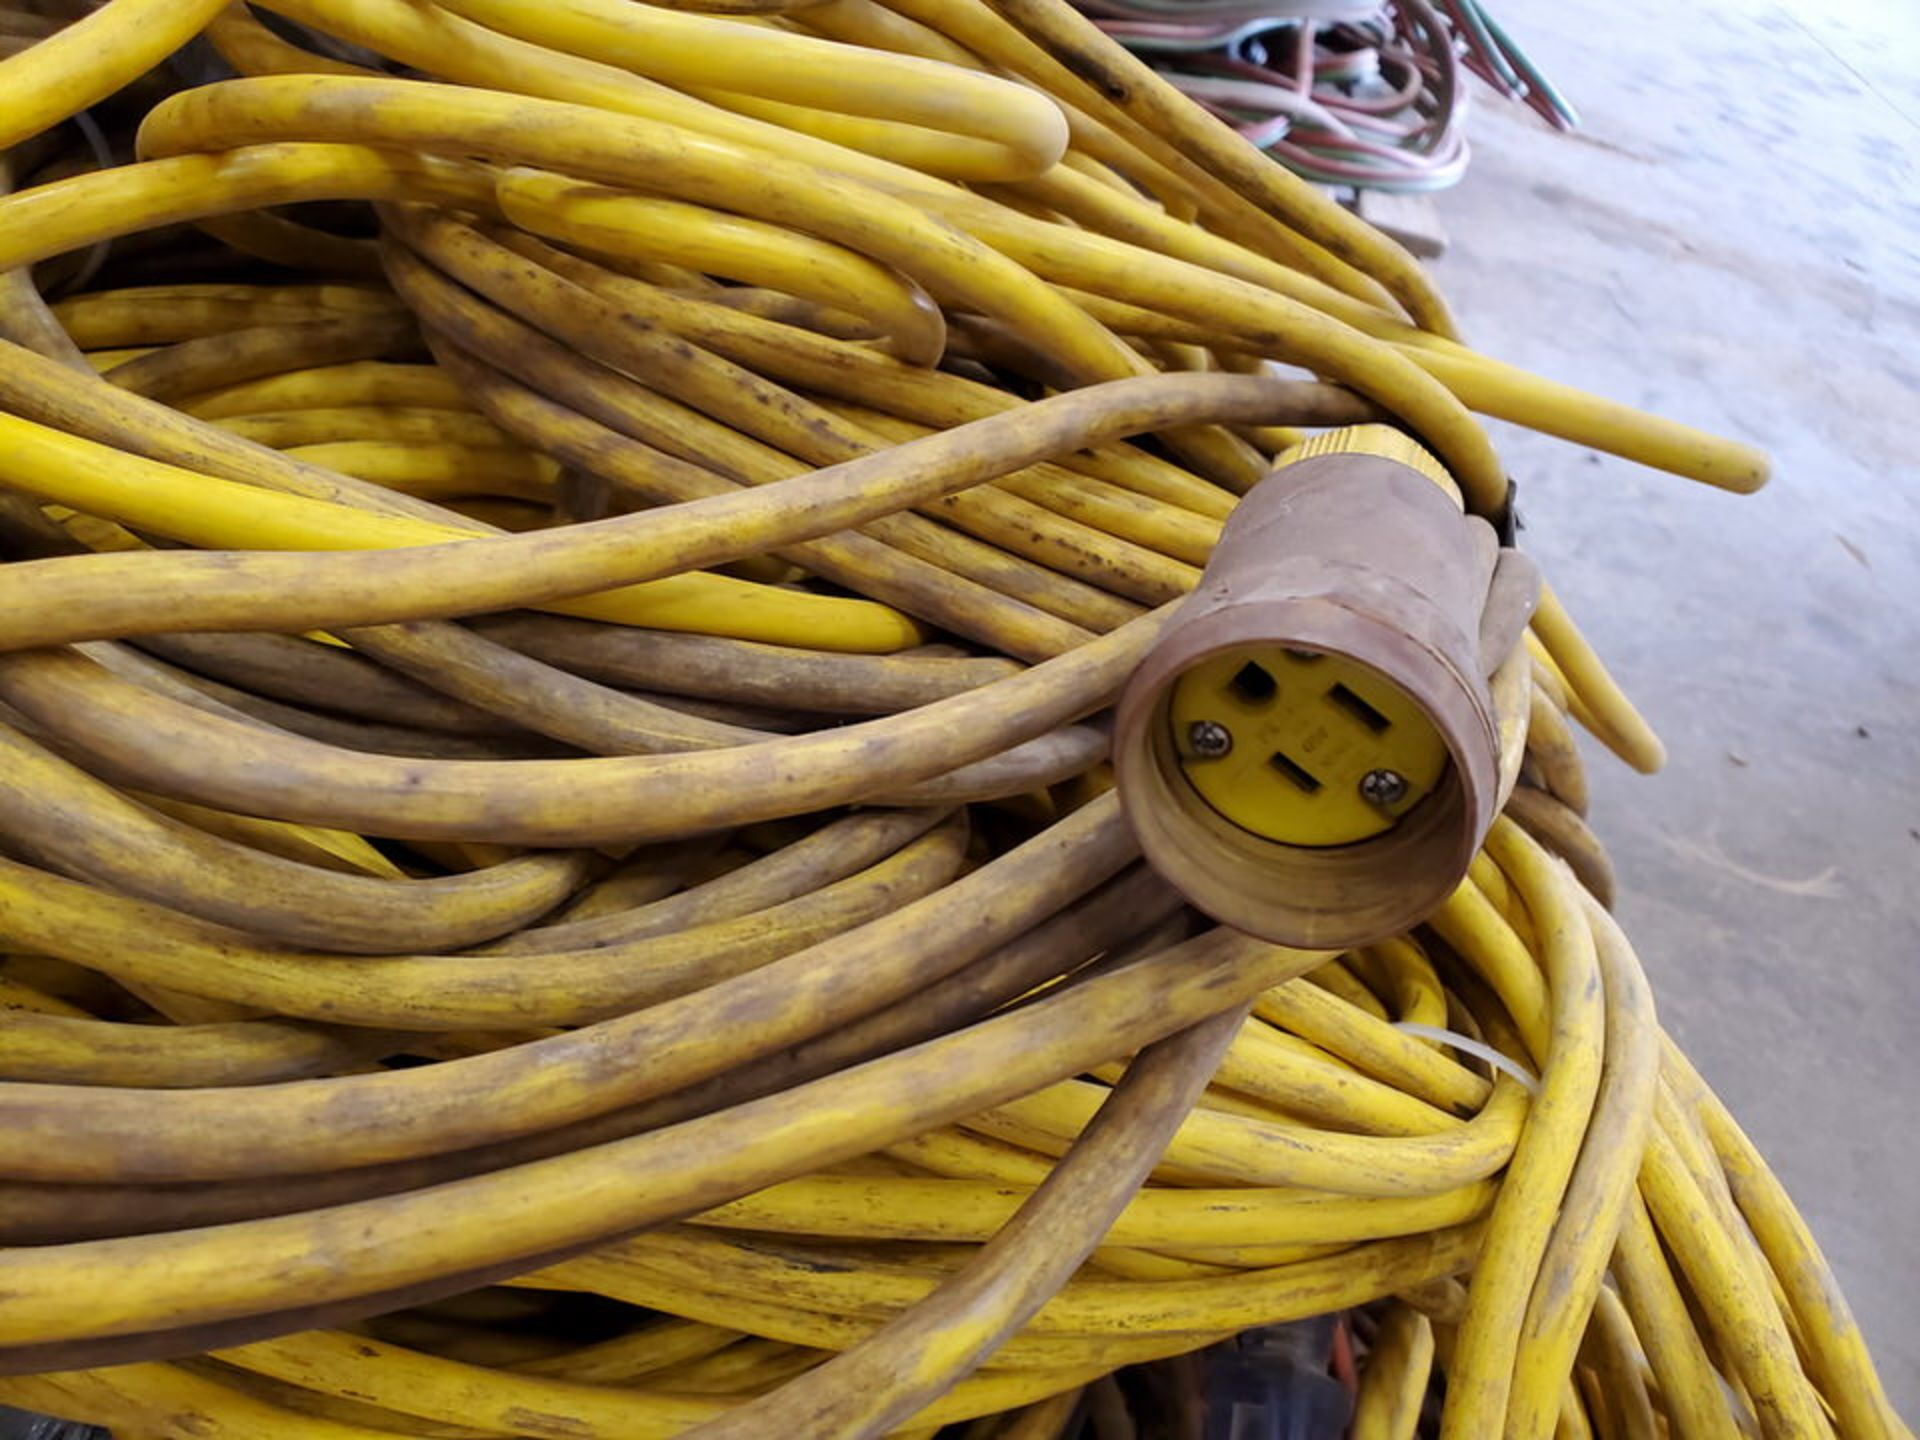 Assorted Extension Cords - Image 4 of 5